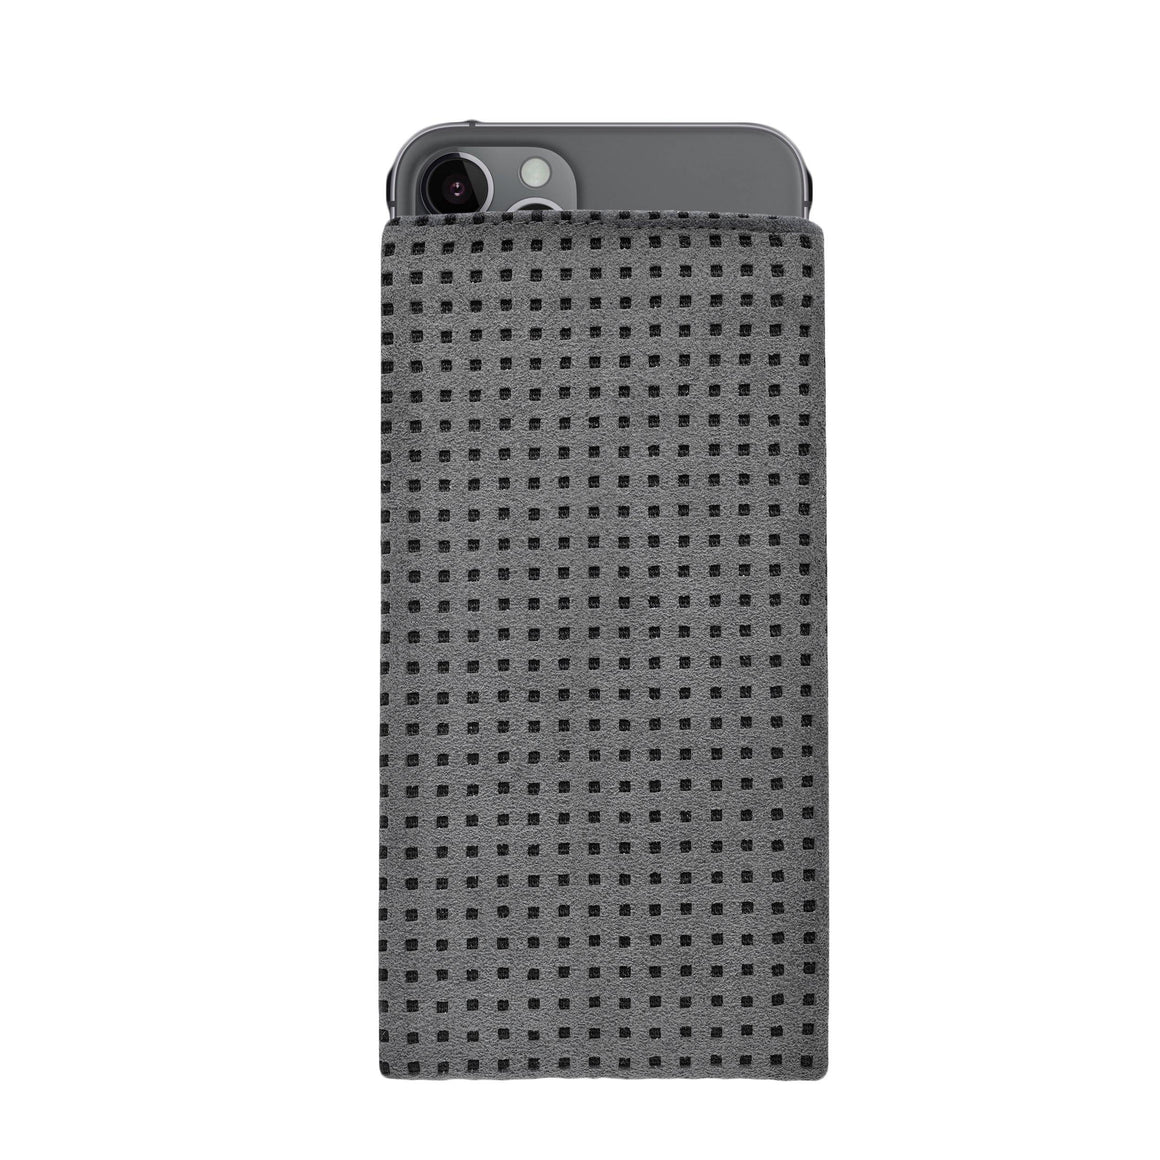 iPhone Alcantara Slip-Case Grey - Wrappers UK